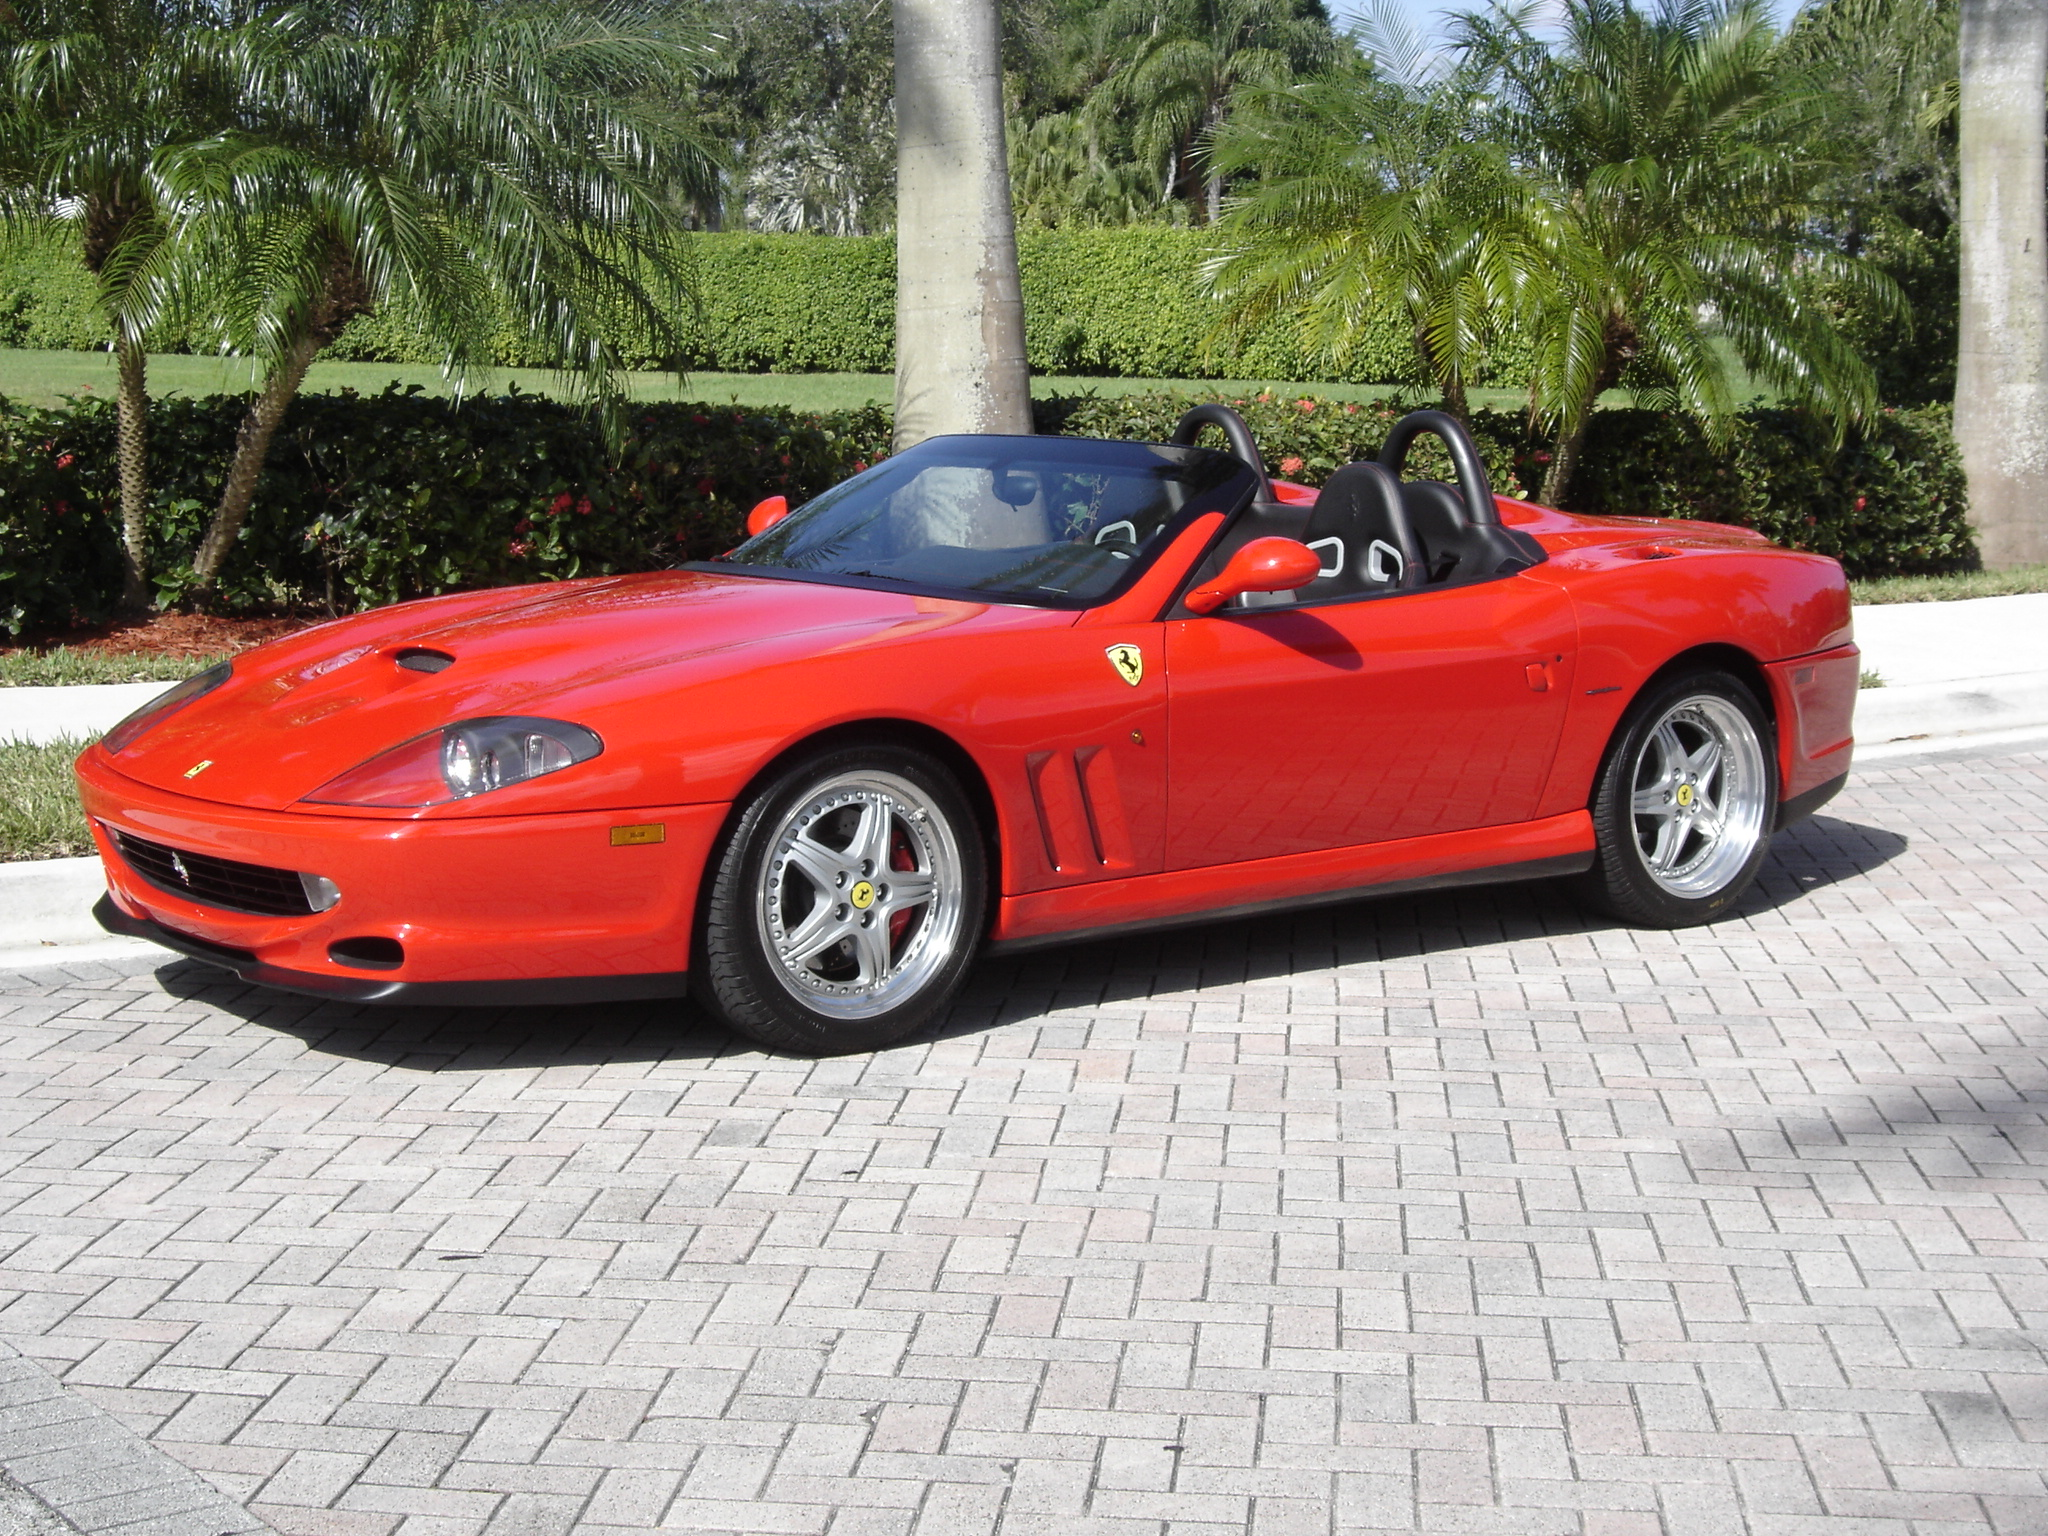 FERRARI 550 BARCHETTA brown